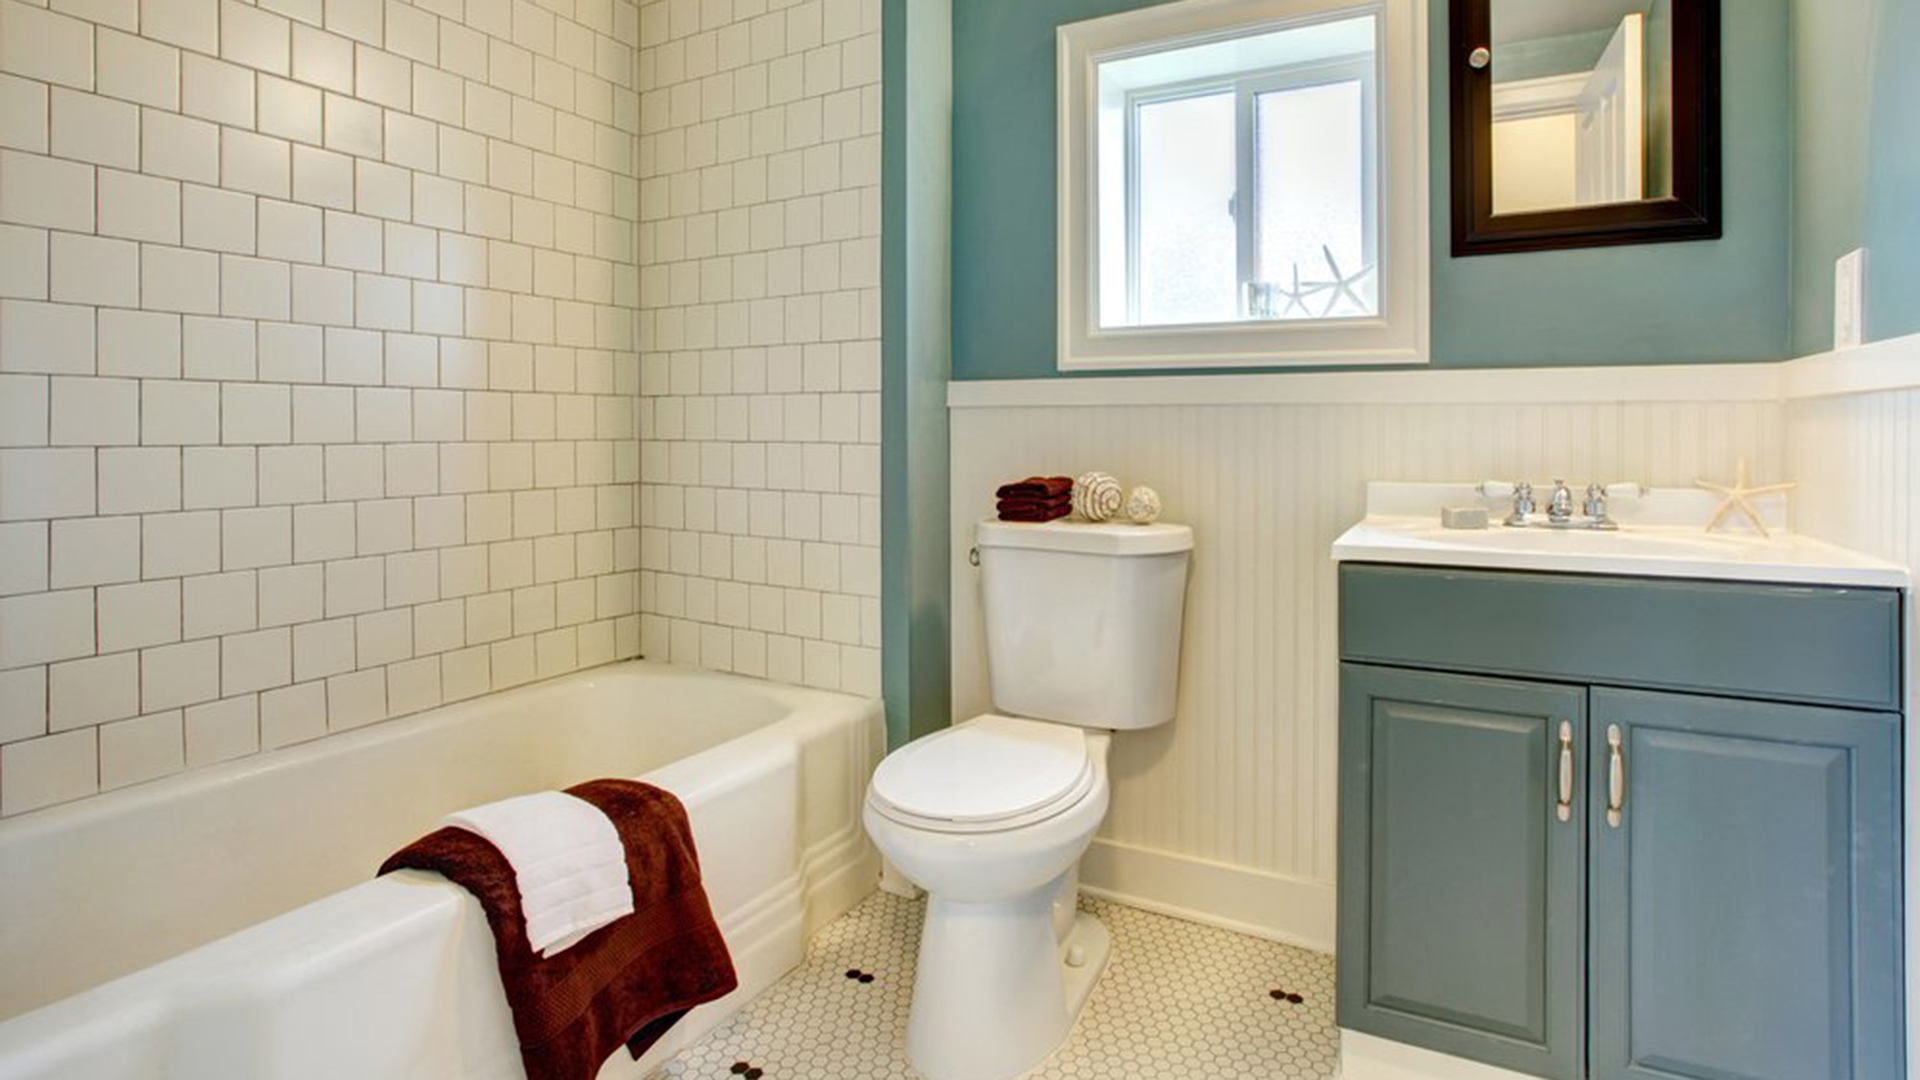 11 Easy Ways To Make Your Rental Bathroom Look Stylish: DIY Ways To Improve Rental's Bathroom